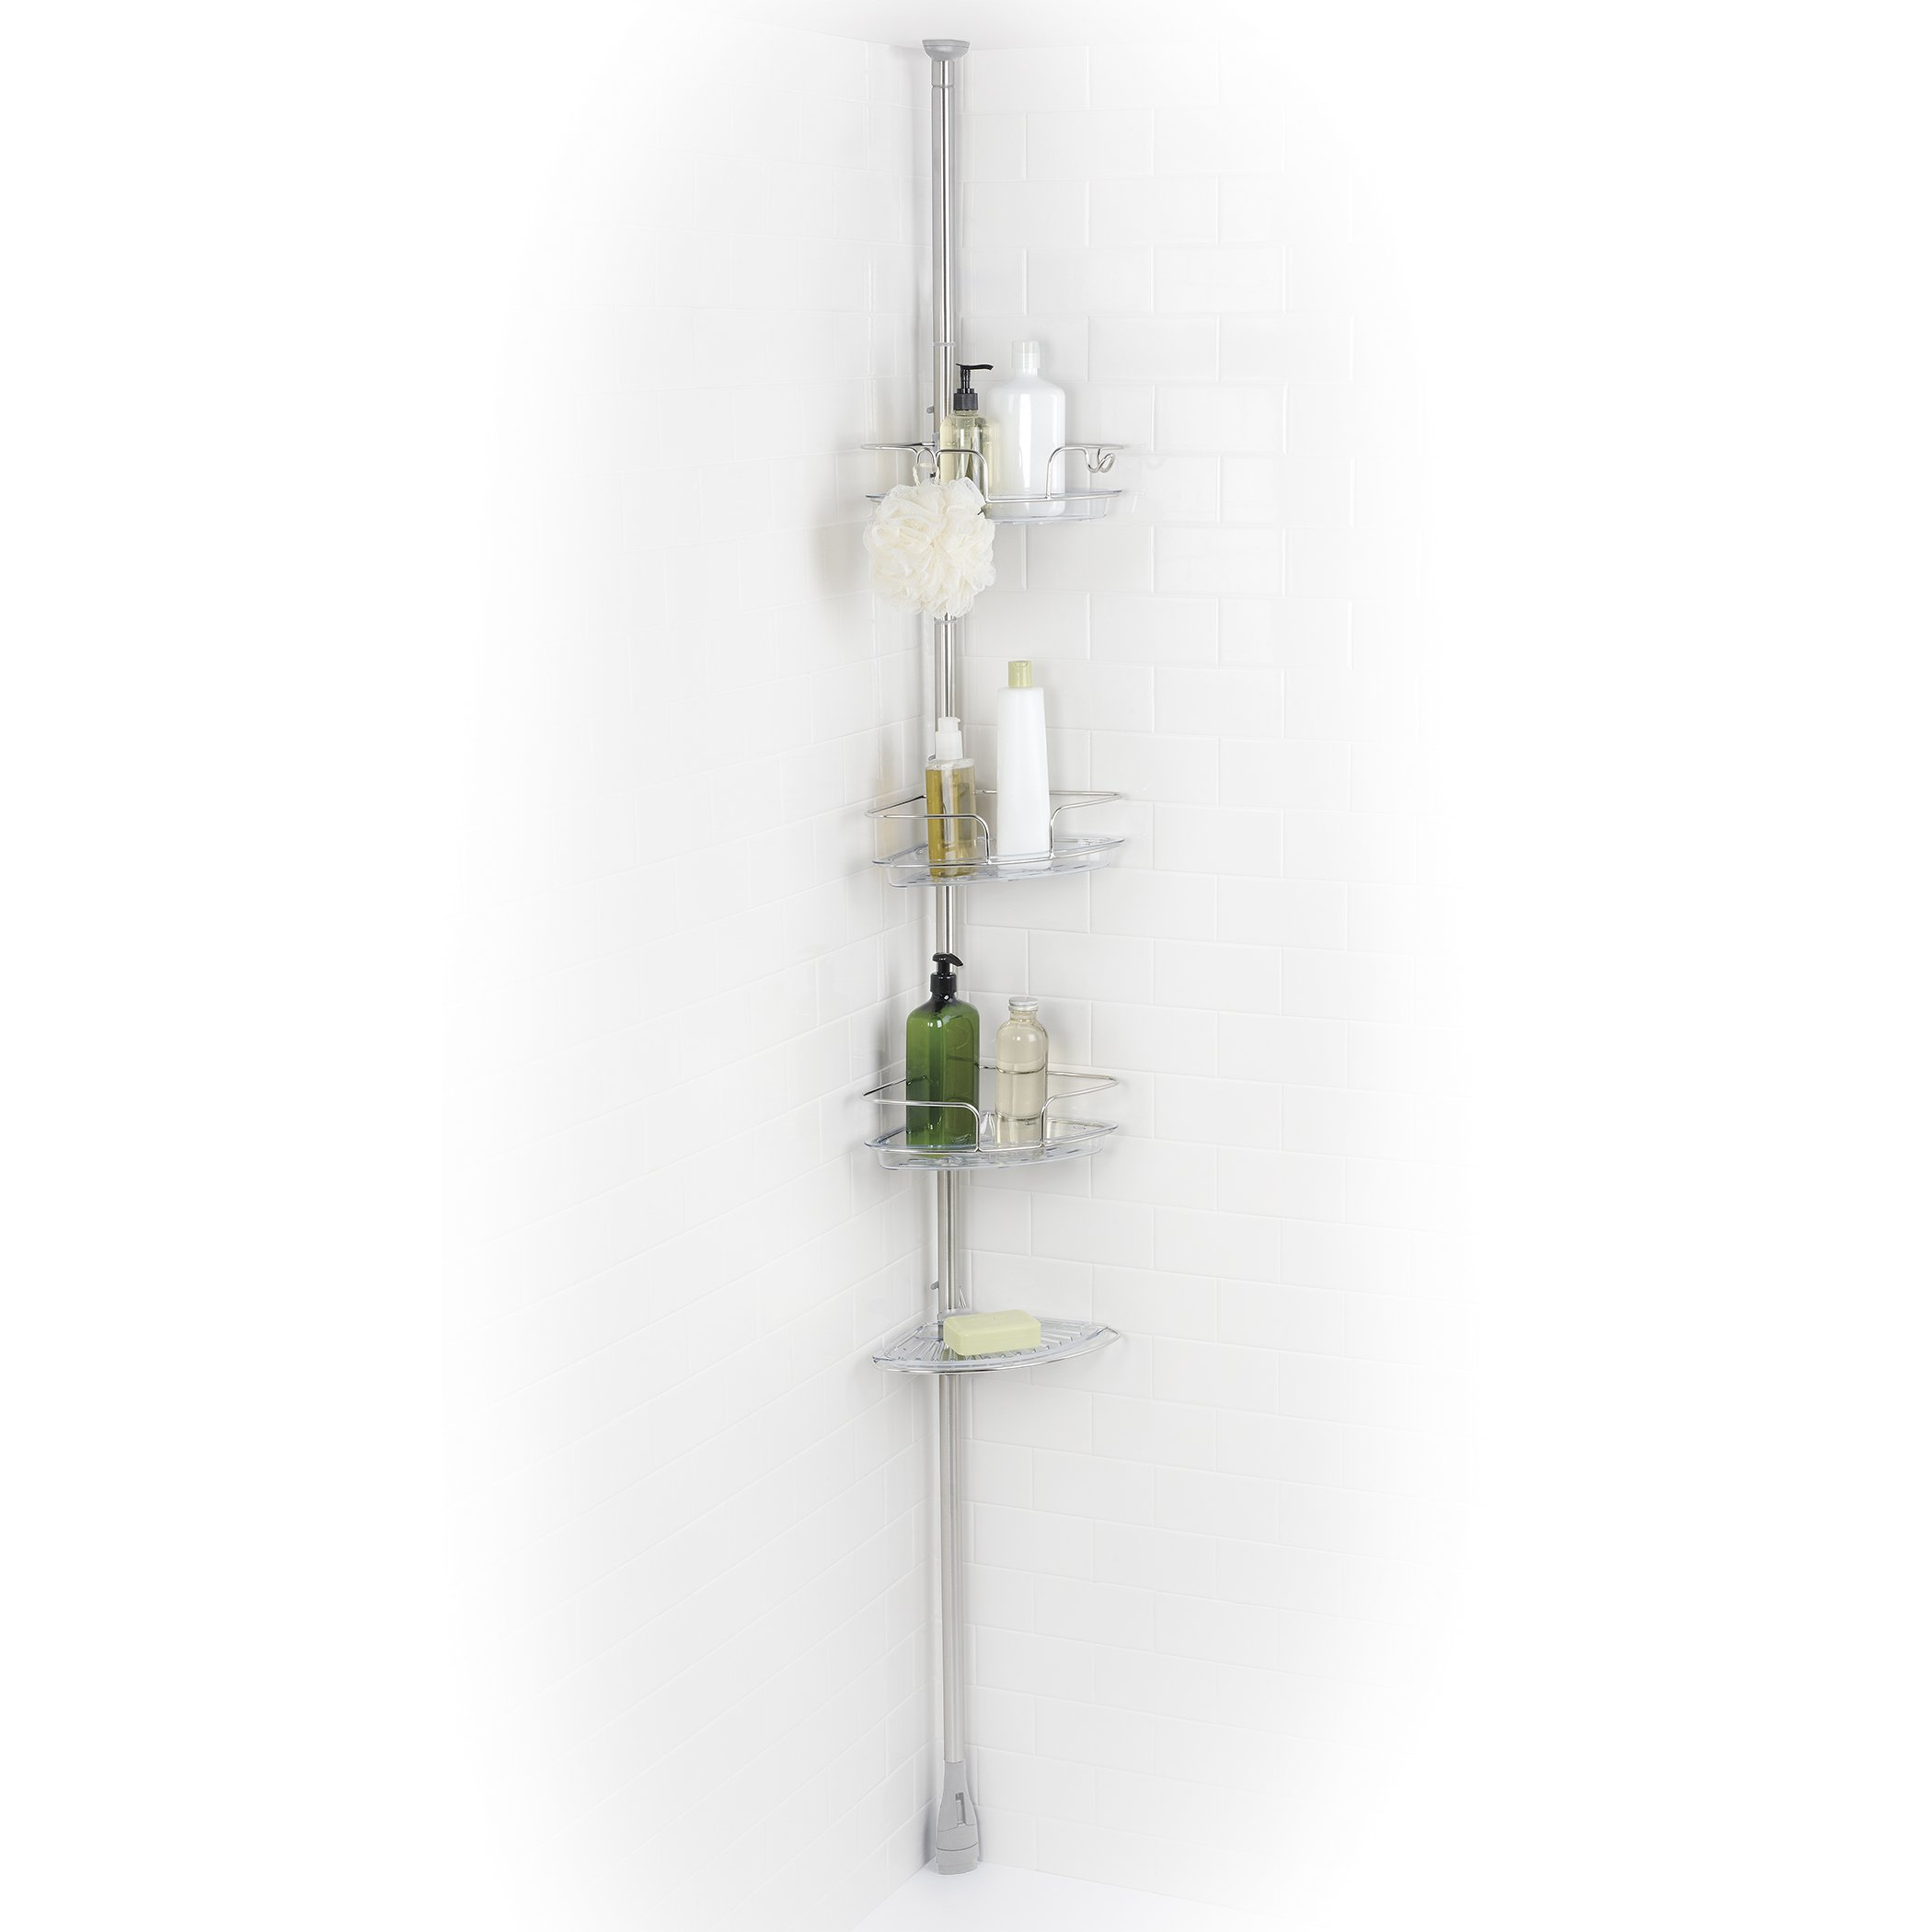 OXO Good Grips Lift and Lock Stainless Steel Tension Pole Shower Caddy by OXO (Image #5)